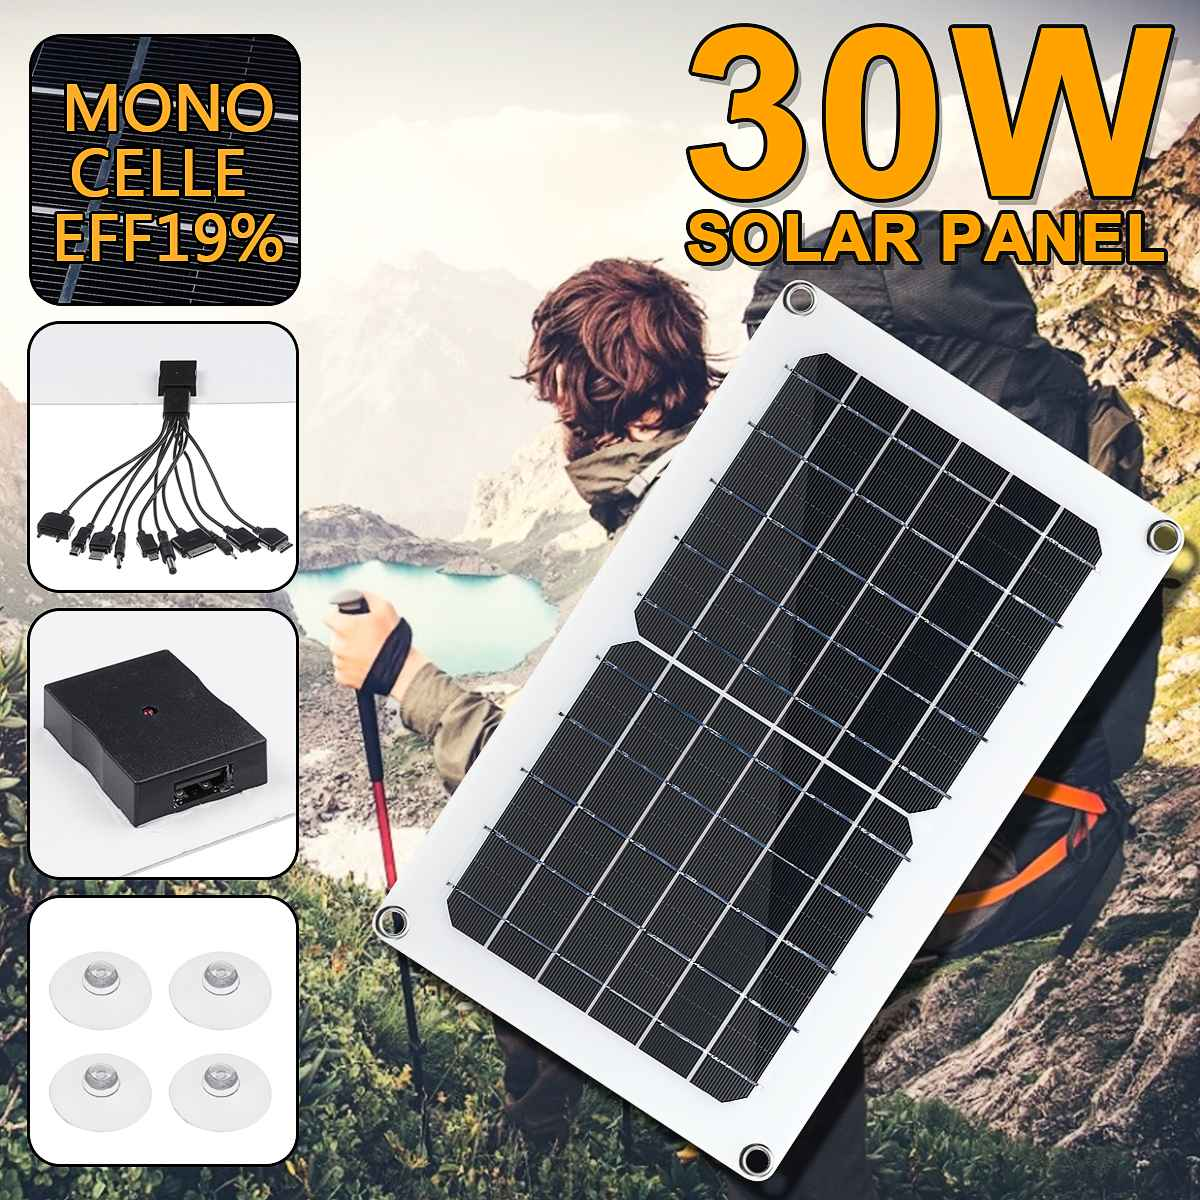 <font><b>Solar</b></font> <font><b>Panel</b></font> 30W <font><b>5V</b></font> <font><b>Solar</b></font> Cell USB Monocrystalline <font><b>2A</b></font> <font><b>Solar</b></font> charger Output Outdoor Camping Working with One to Ten Data Cable image